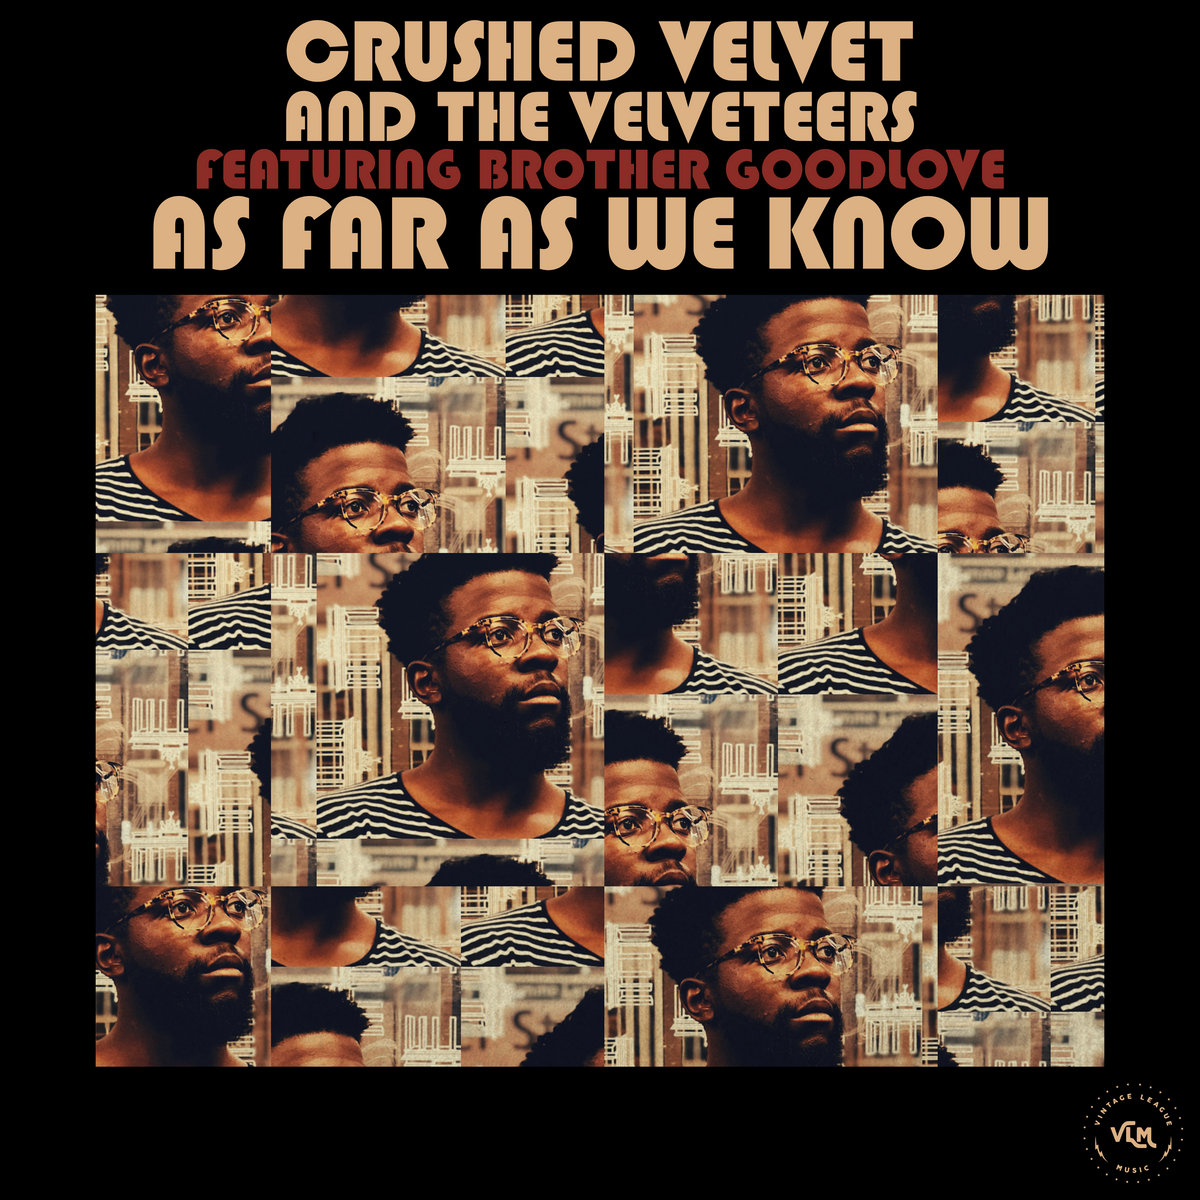 Crushed Velvet and the Velveteers (Feat. Brother GoodLove) - As Far As We Know